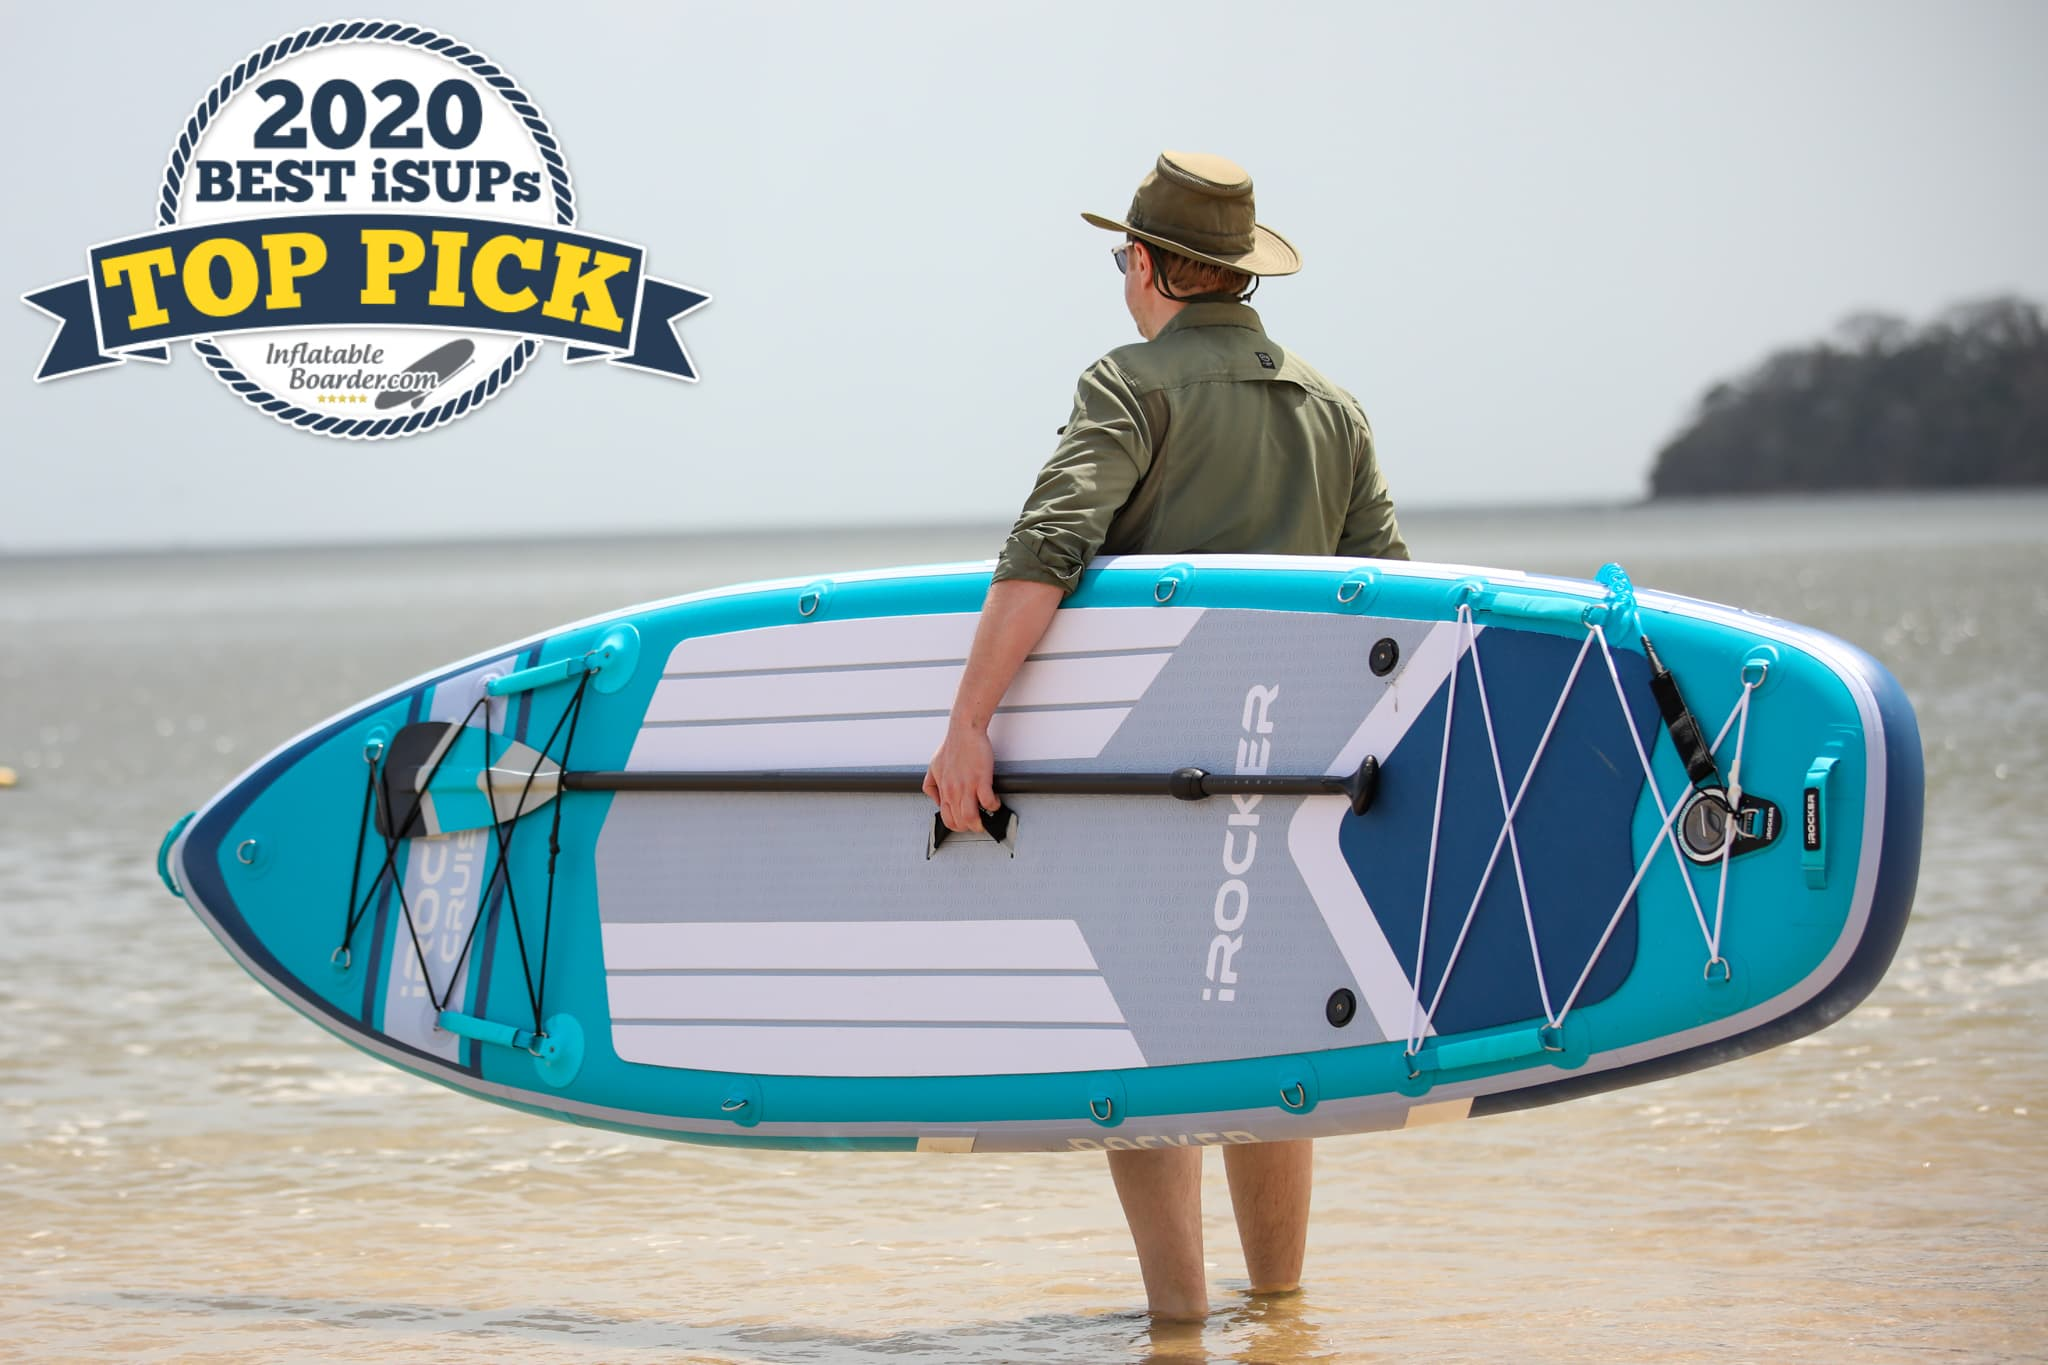 """iROCKER Cruiser paddle board review - a badge reads """"2020 Best iSUPs TOP PICK"""""""